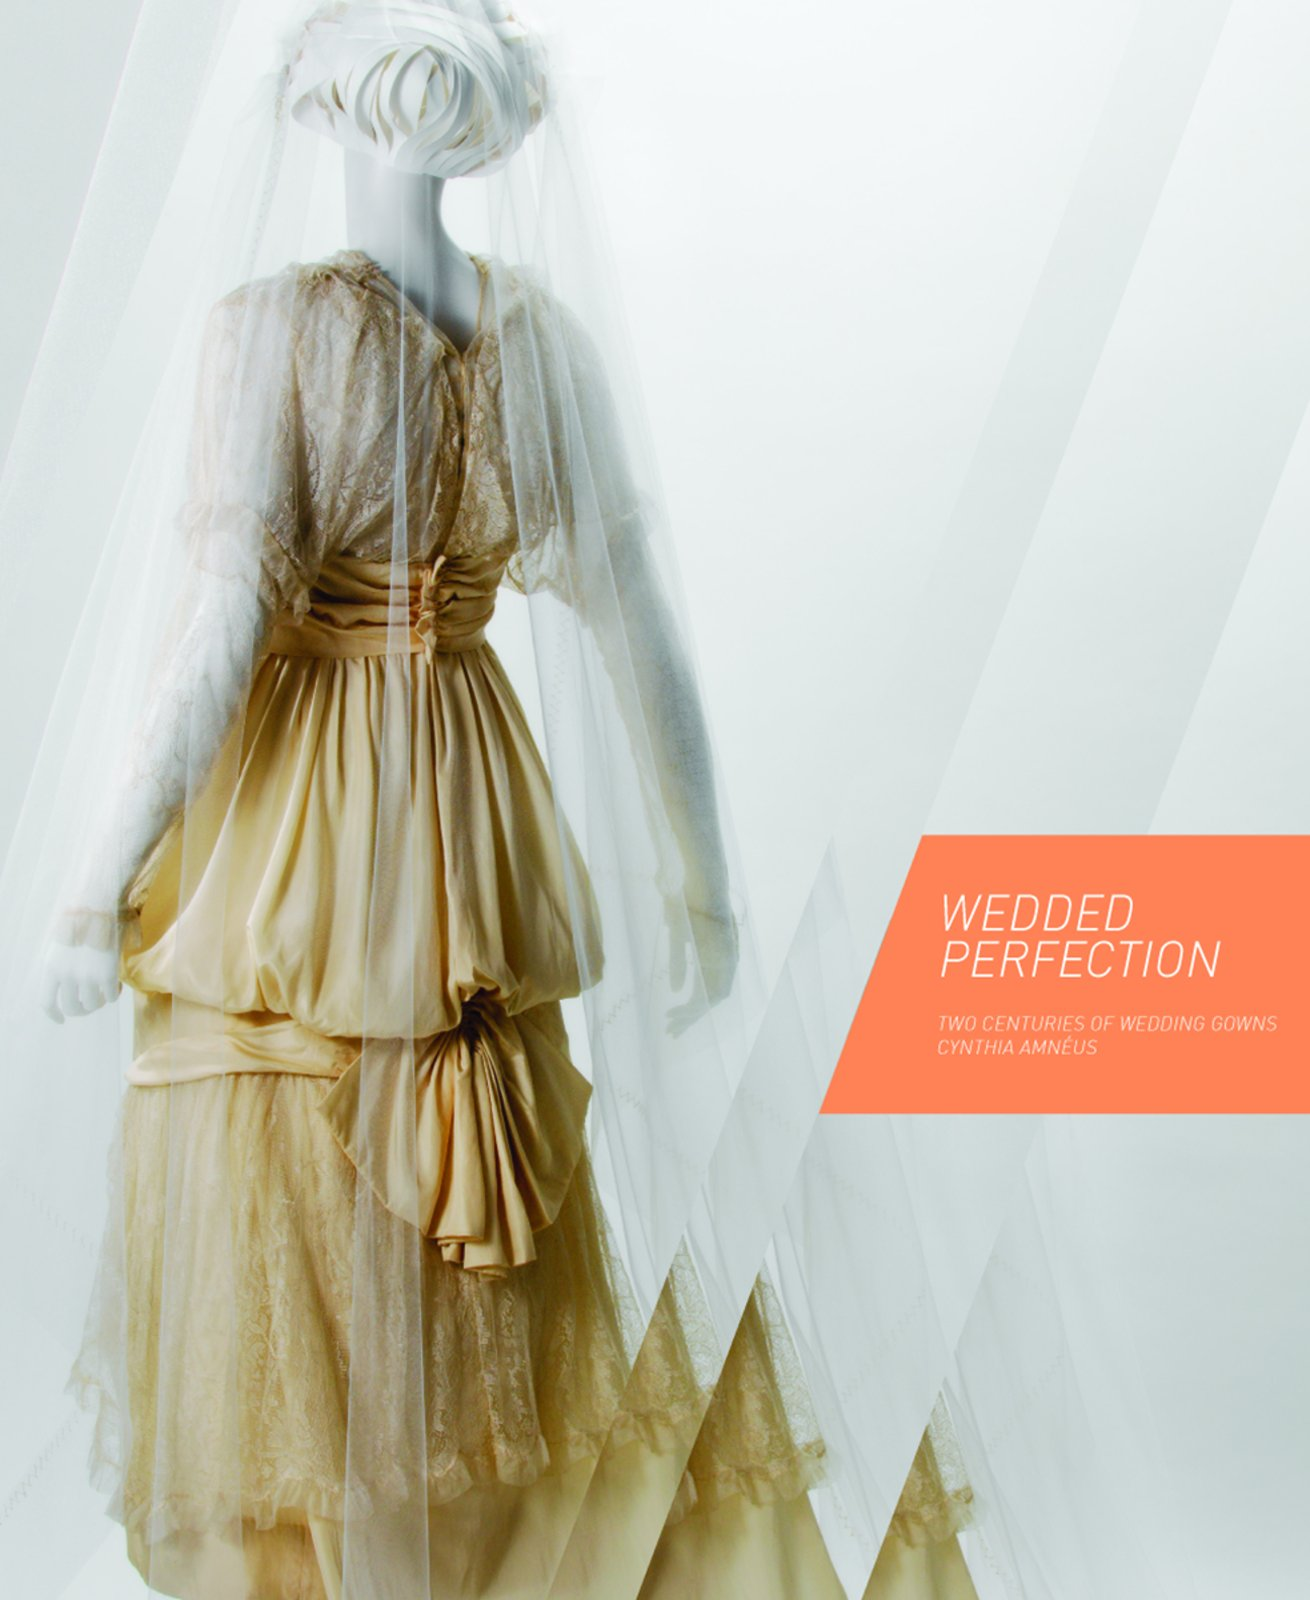 Wedded Perfection: Two Centuries of Wedding Gowns PDF